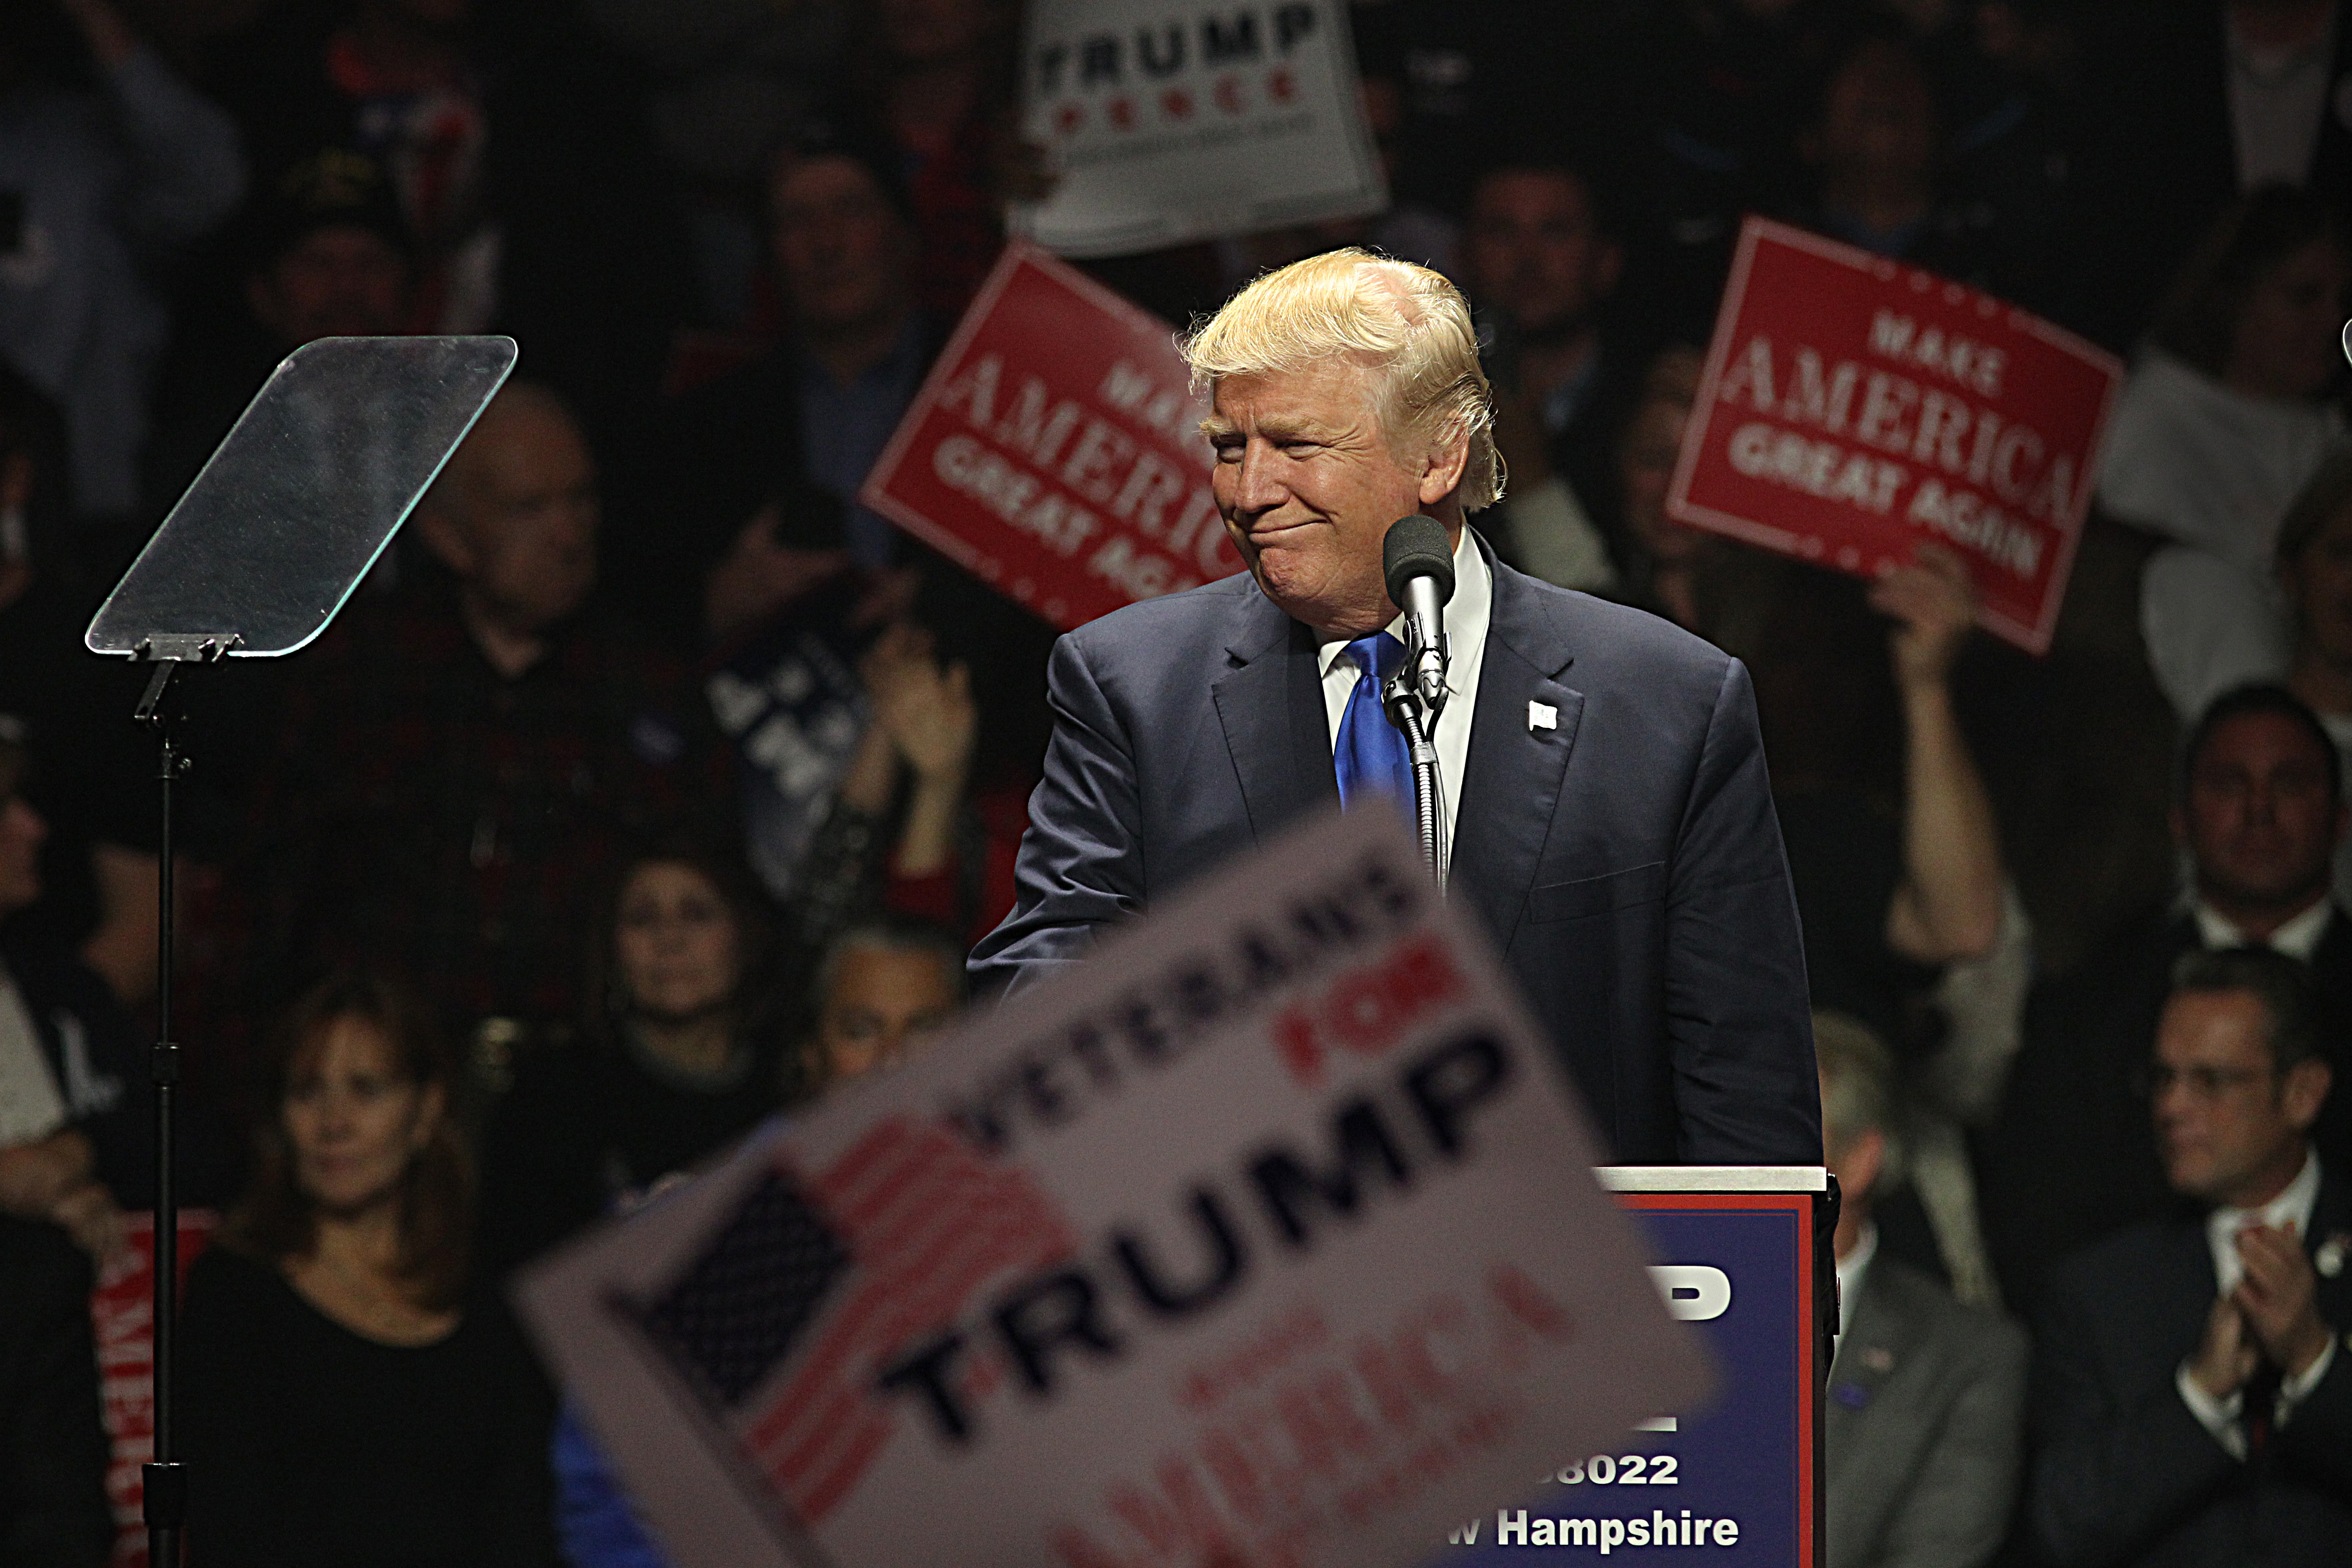 Donald Trump Rally In New Hampshire